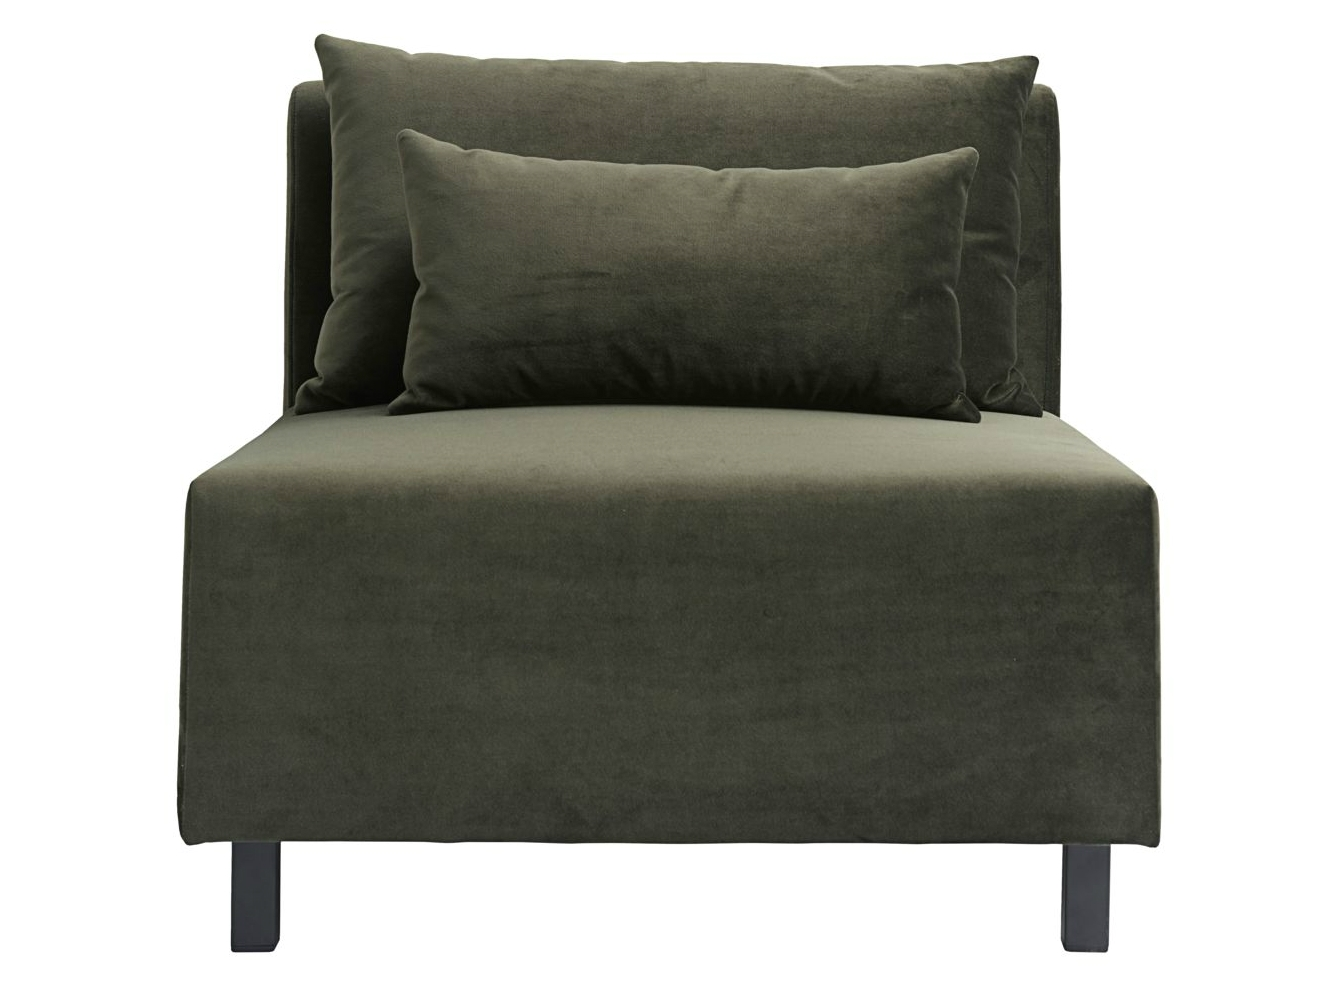 Banken - Housedoctor-bank-sofa-element-groen-middle-middenelement-85x85x77cm-xzh-44-cm-def